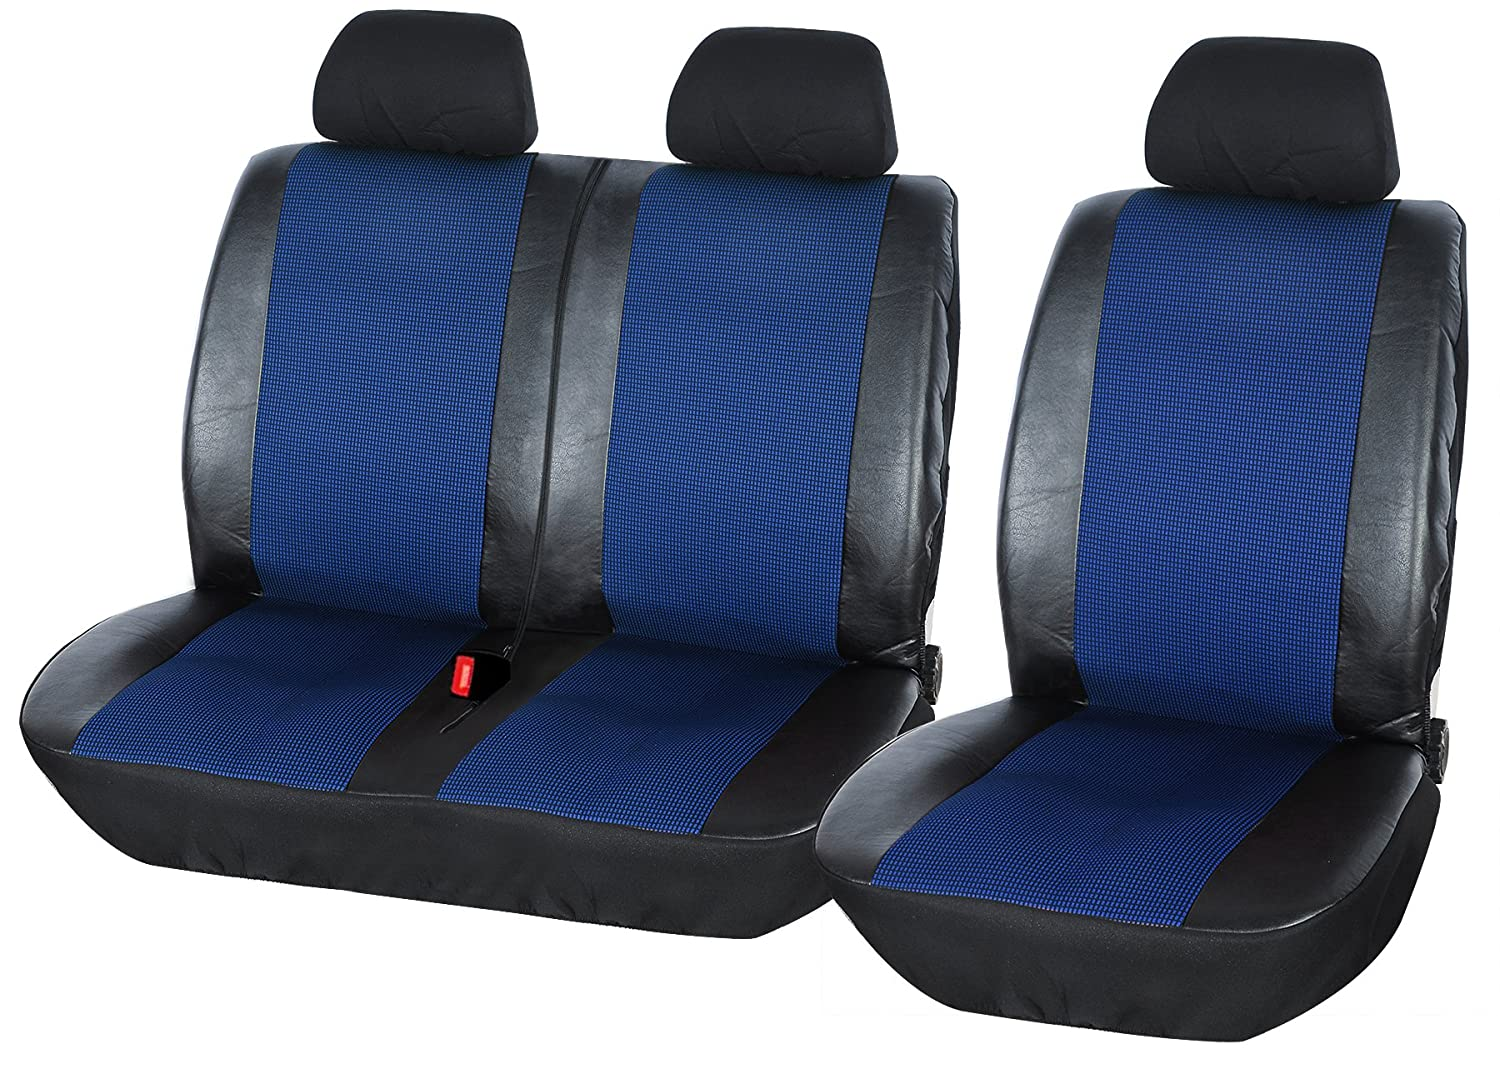 WOLTU AS7325 2+1 Van Truck Lorry Car Seat Covers protectors in Balck and Blue